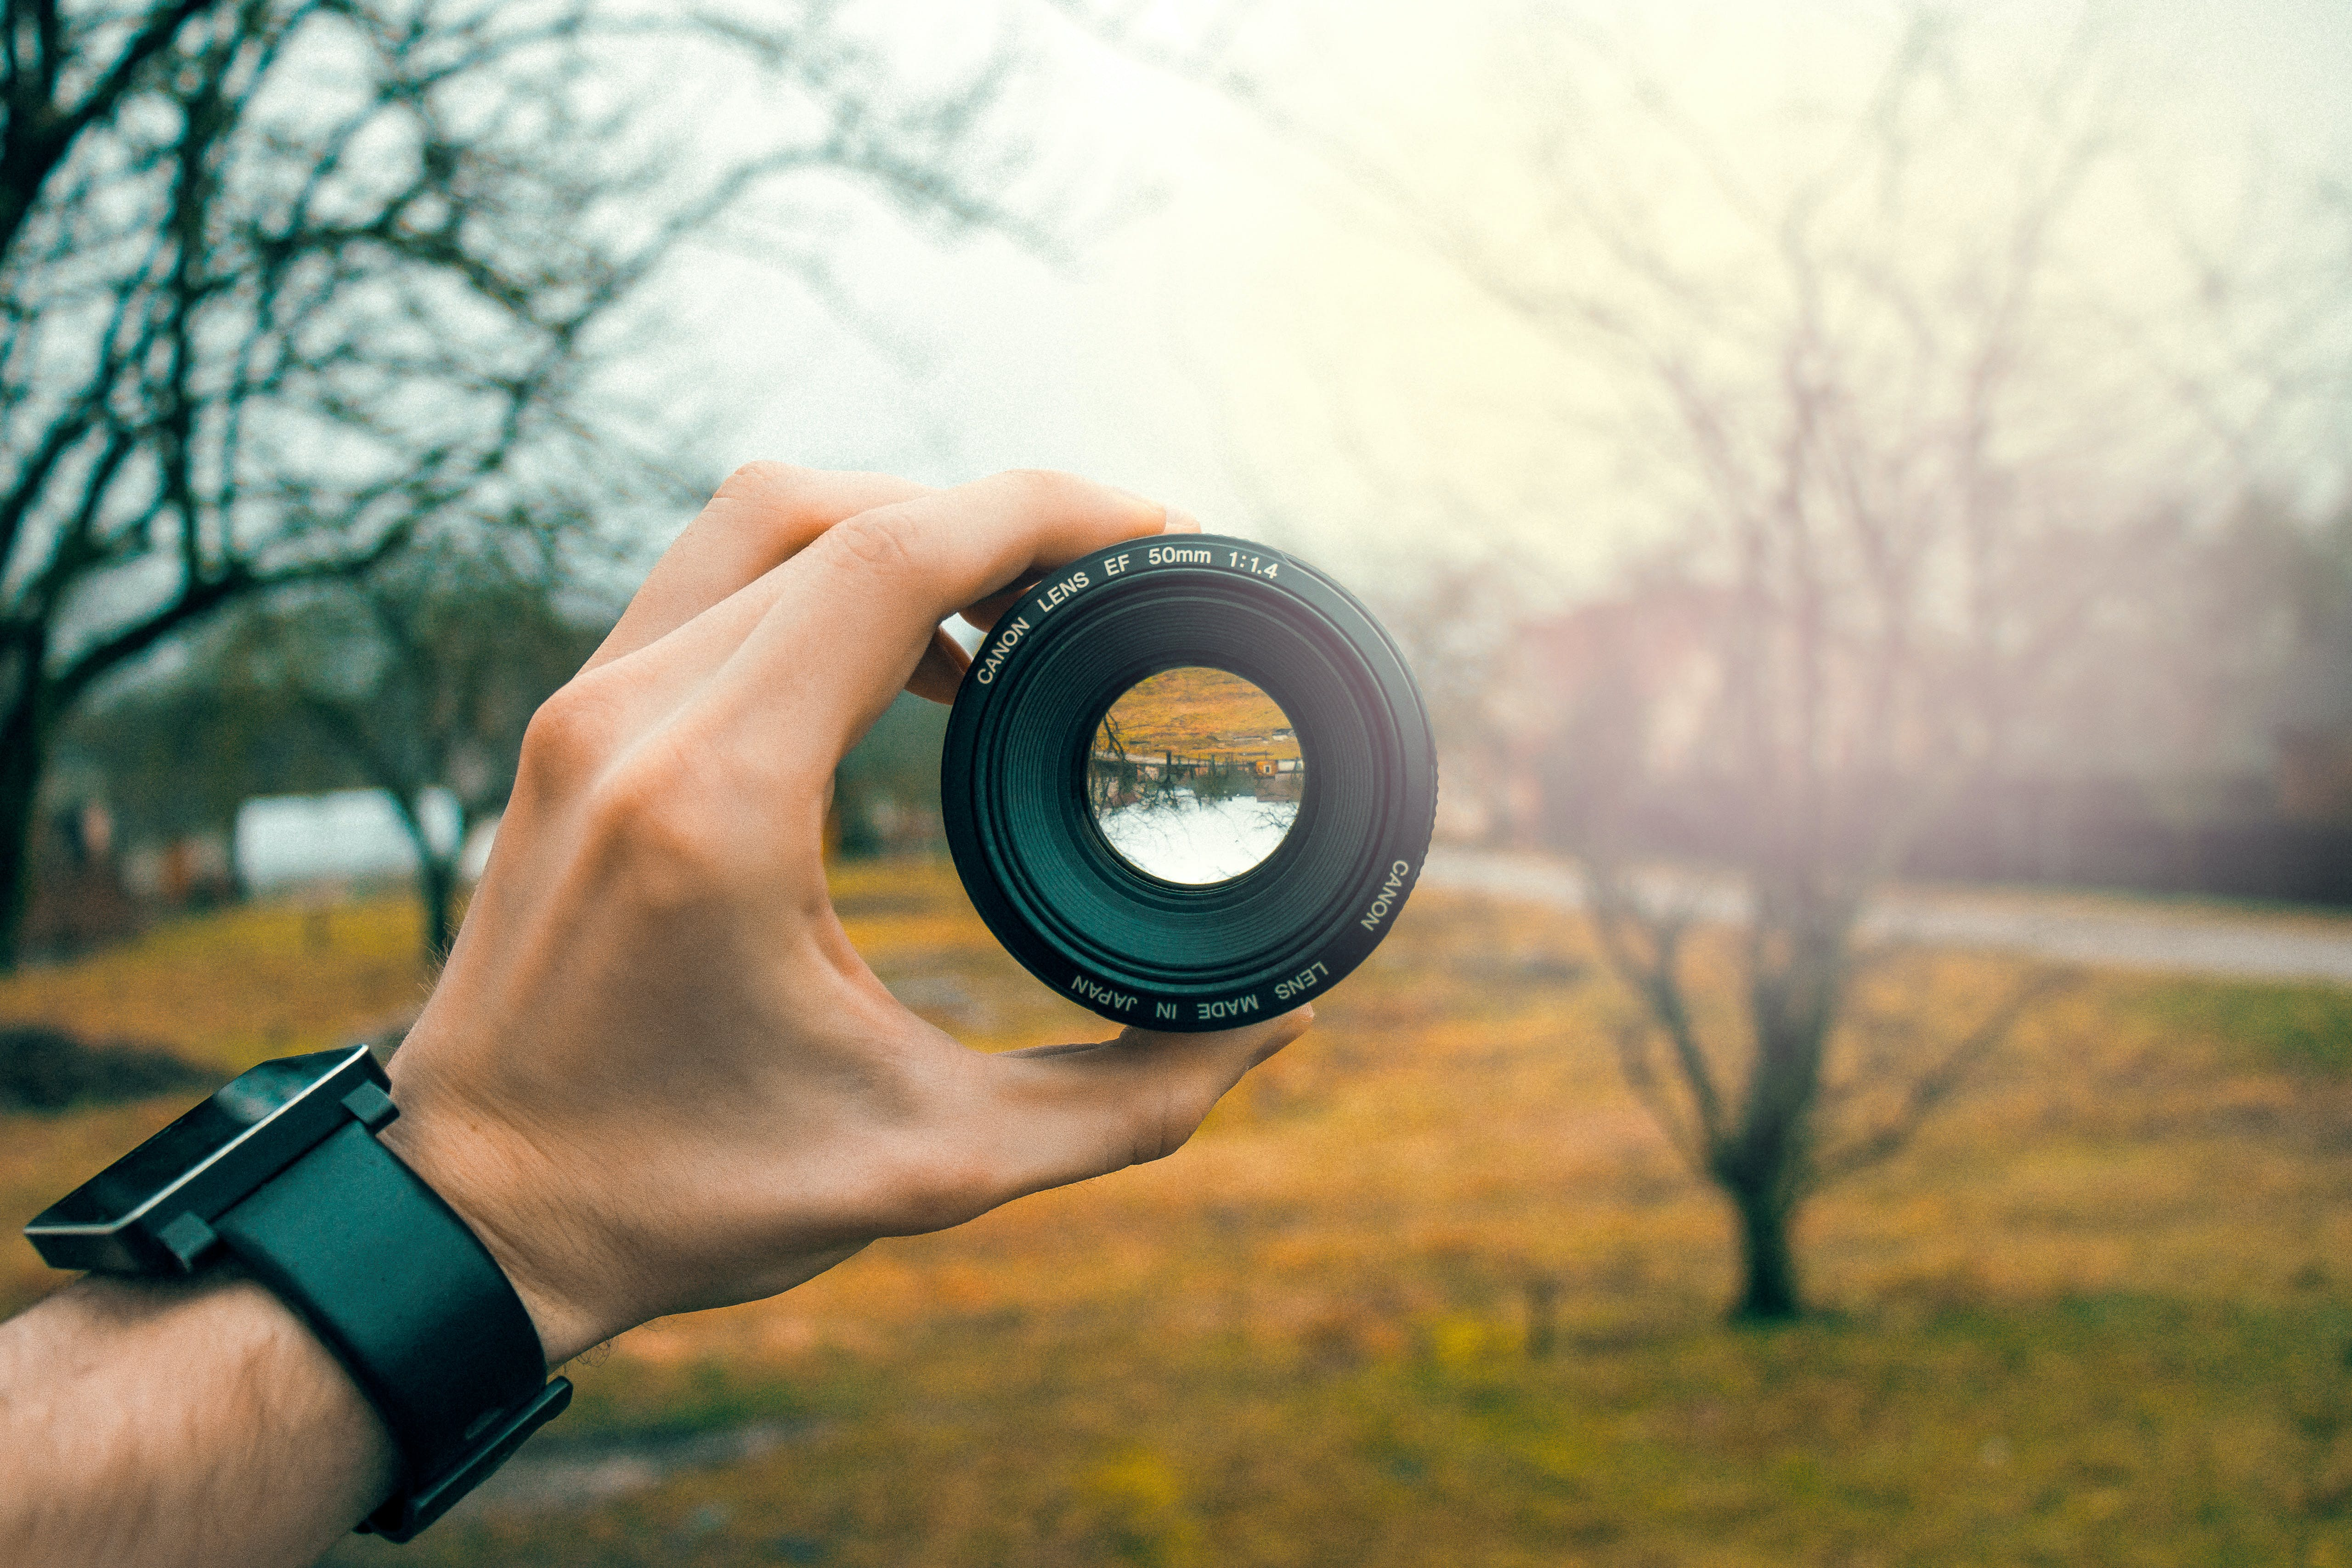 Photography of Person Holding Black Camera Lens